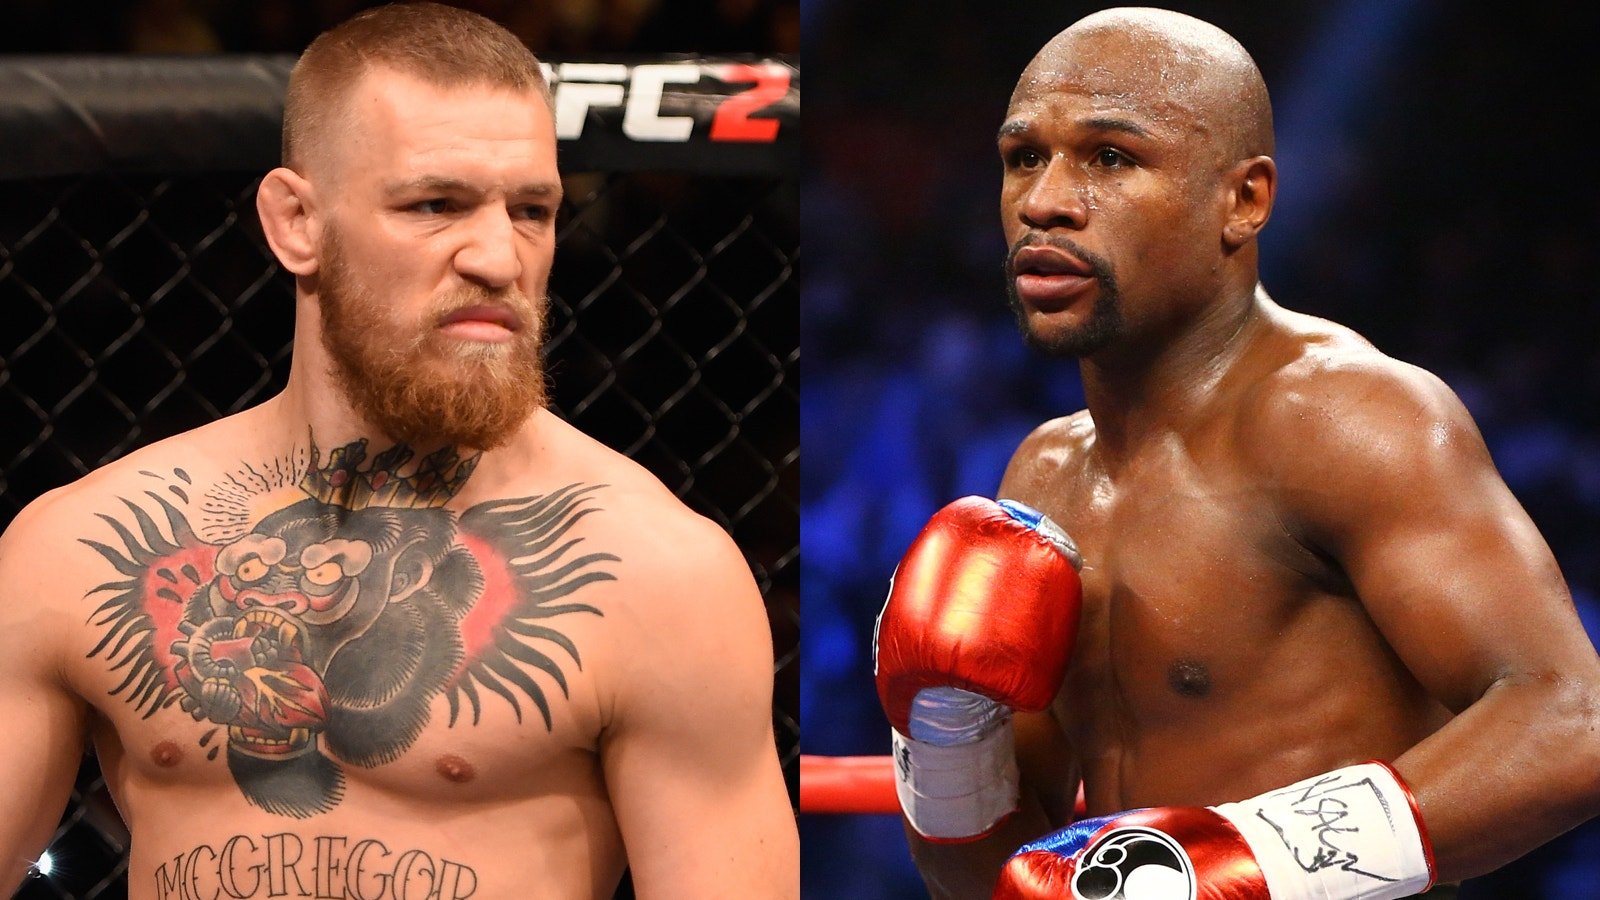 Conor Mcgregor Vs Floyd Mayweather Official For Aug 26 In Las